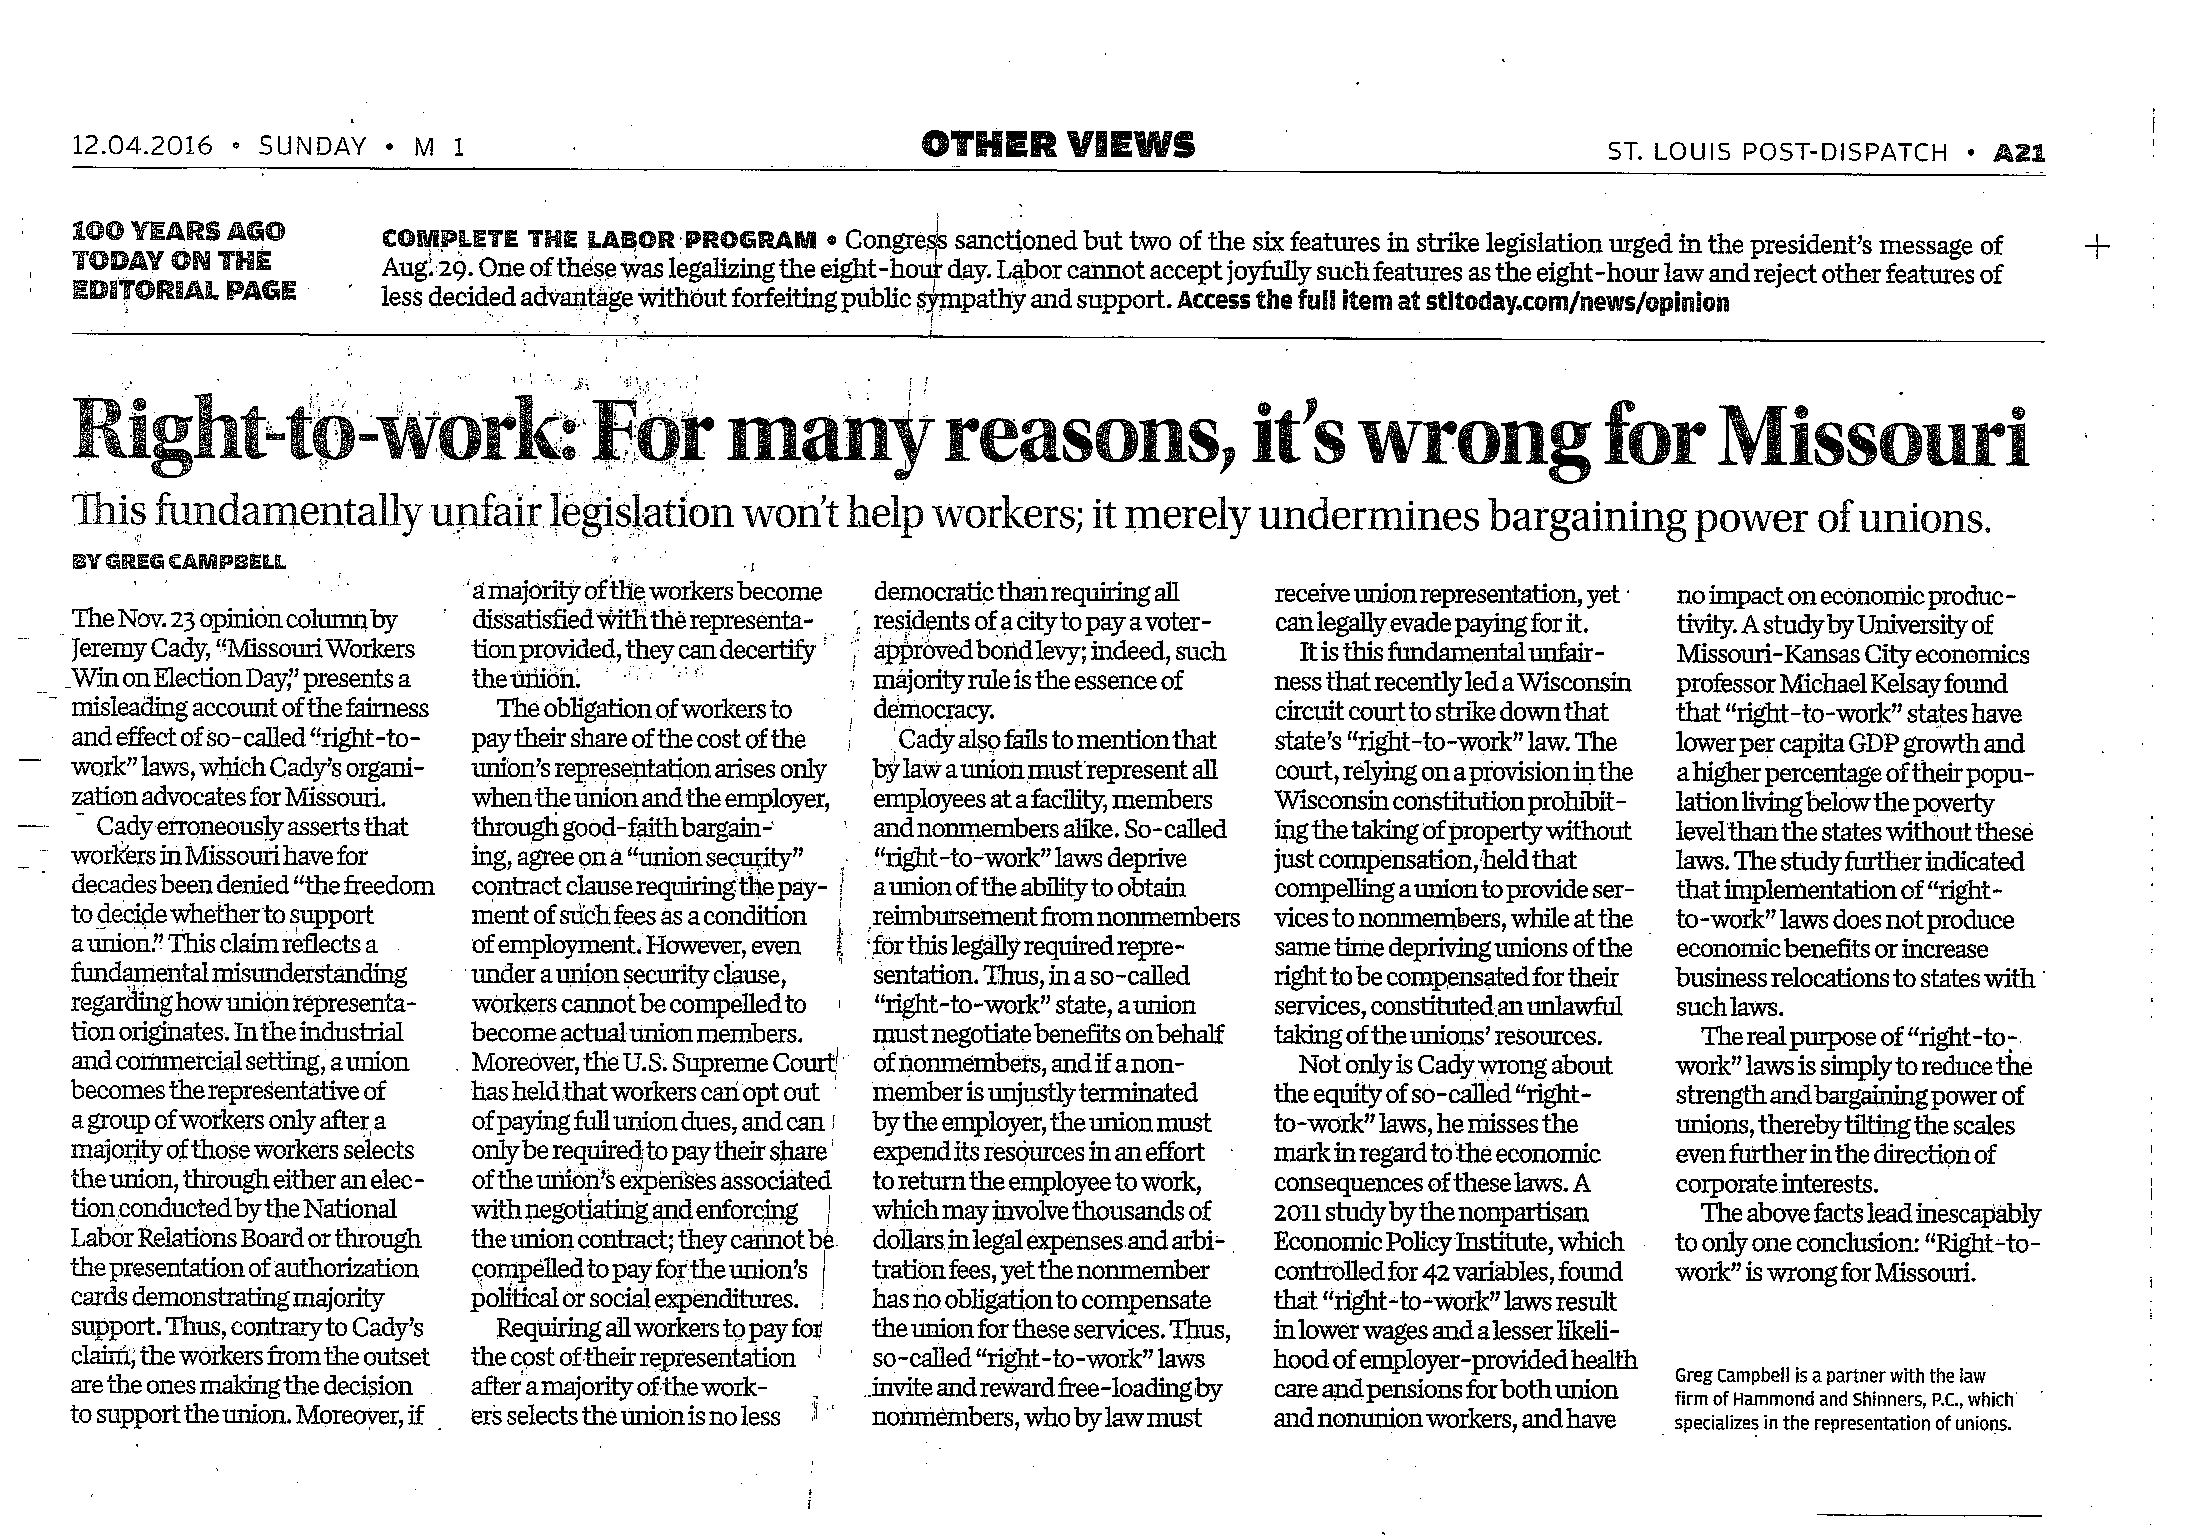 Right-to-work: For many reasons, it's wrong for Missouri